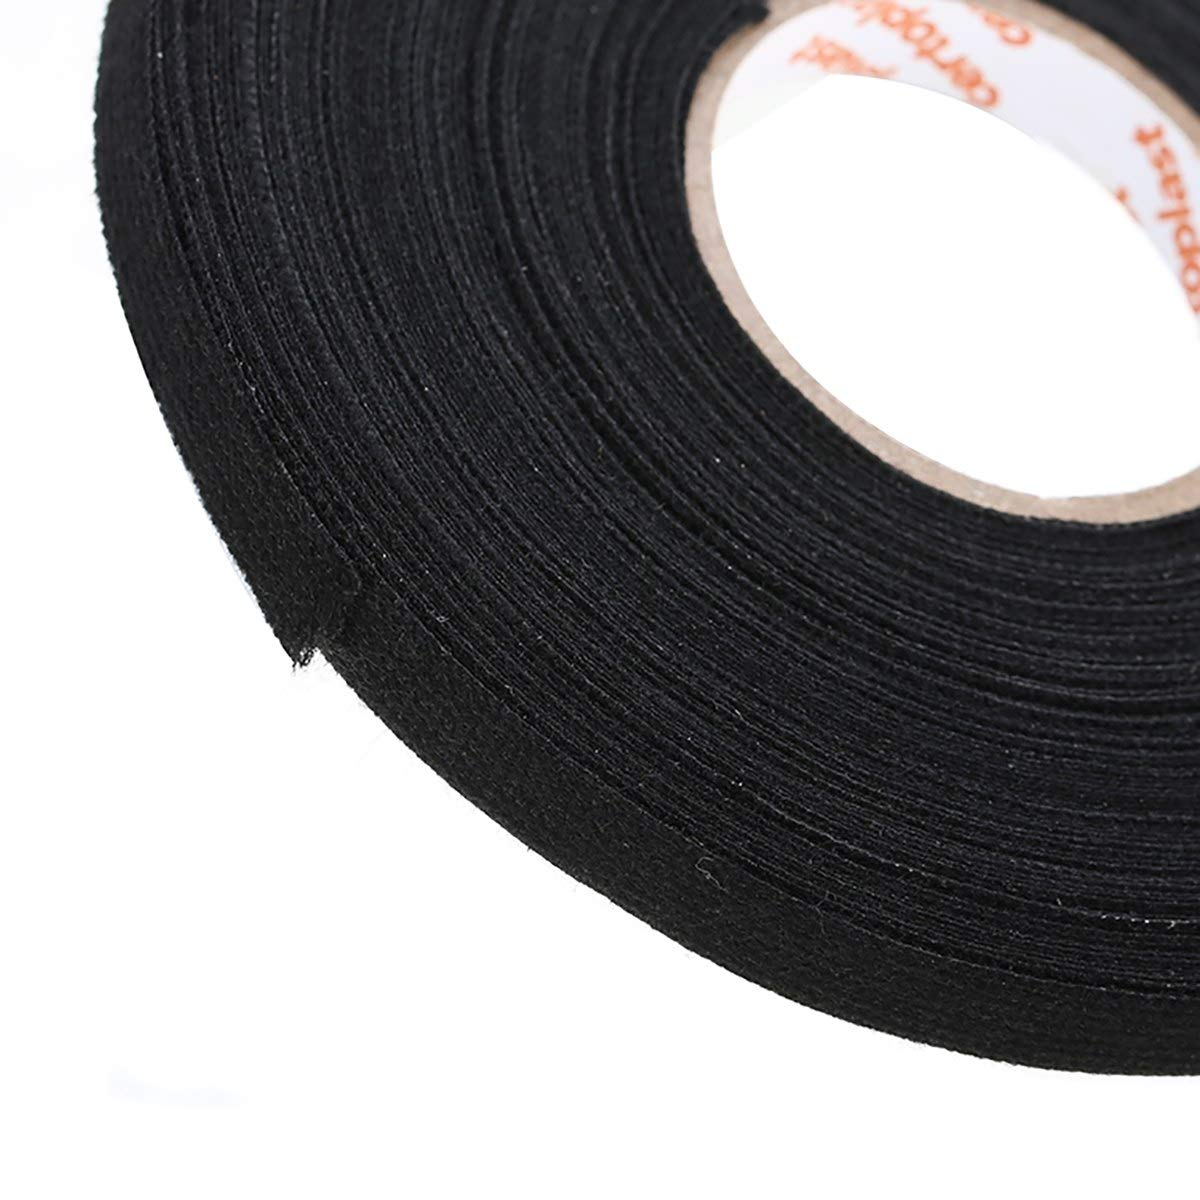 Sealers Waterproof Black Loom Wiring Harness Adhesive Cloth Fabric Tape Cable 25m 0 3mm Automotive Tapeline Measure Magnetic Recording Mag Videotape